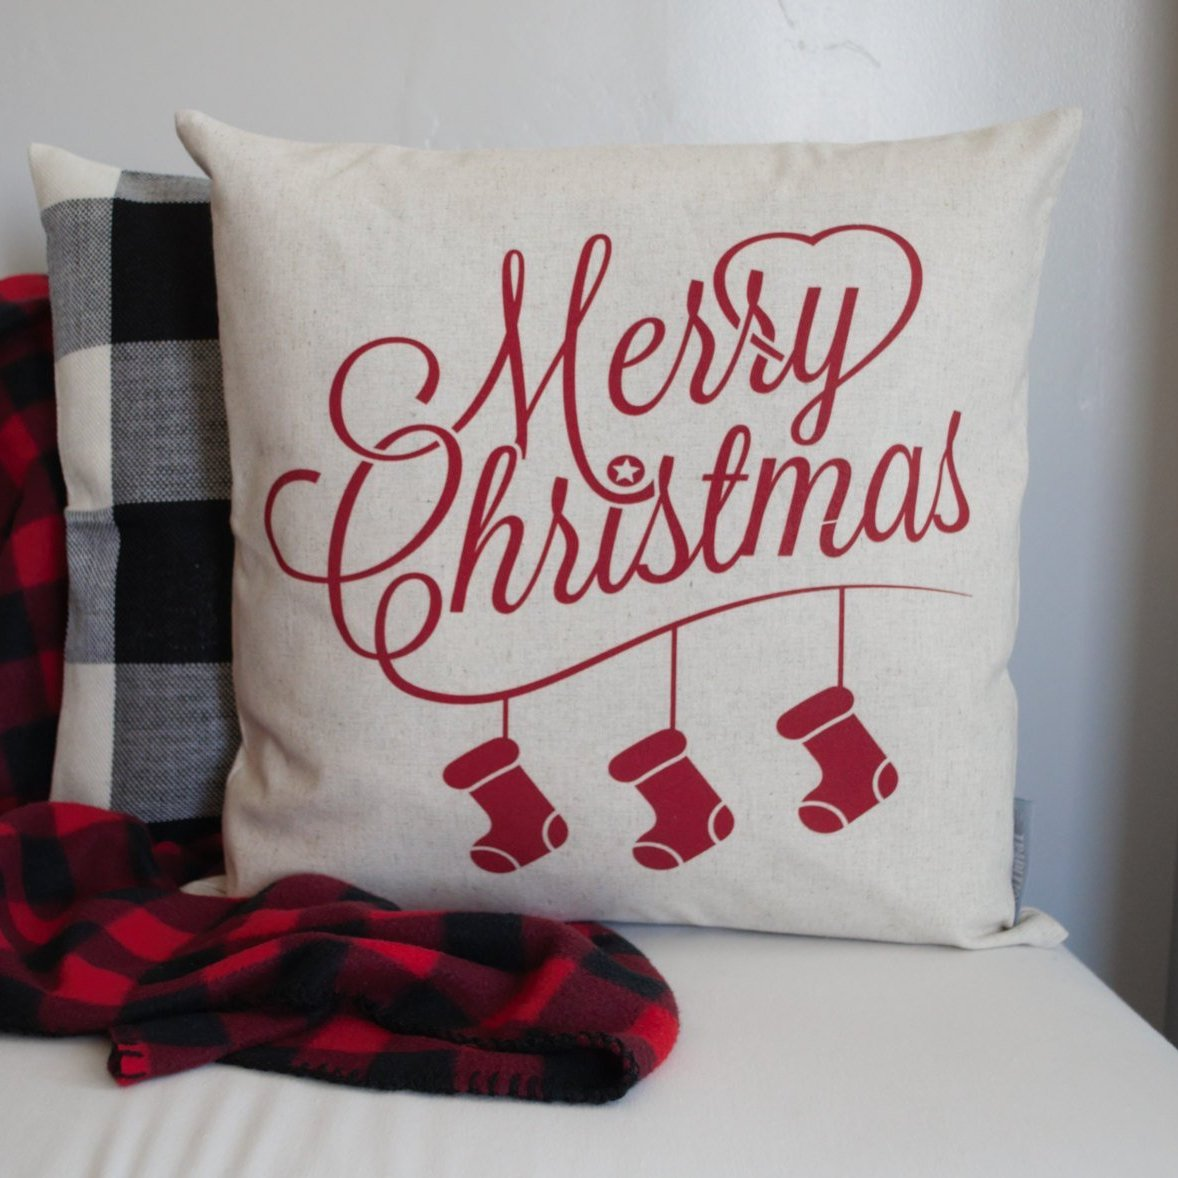 Merry Christmas Stockings Pillow Cover